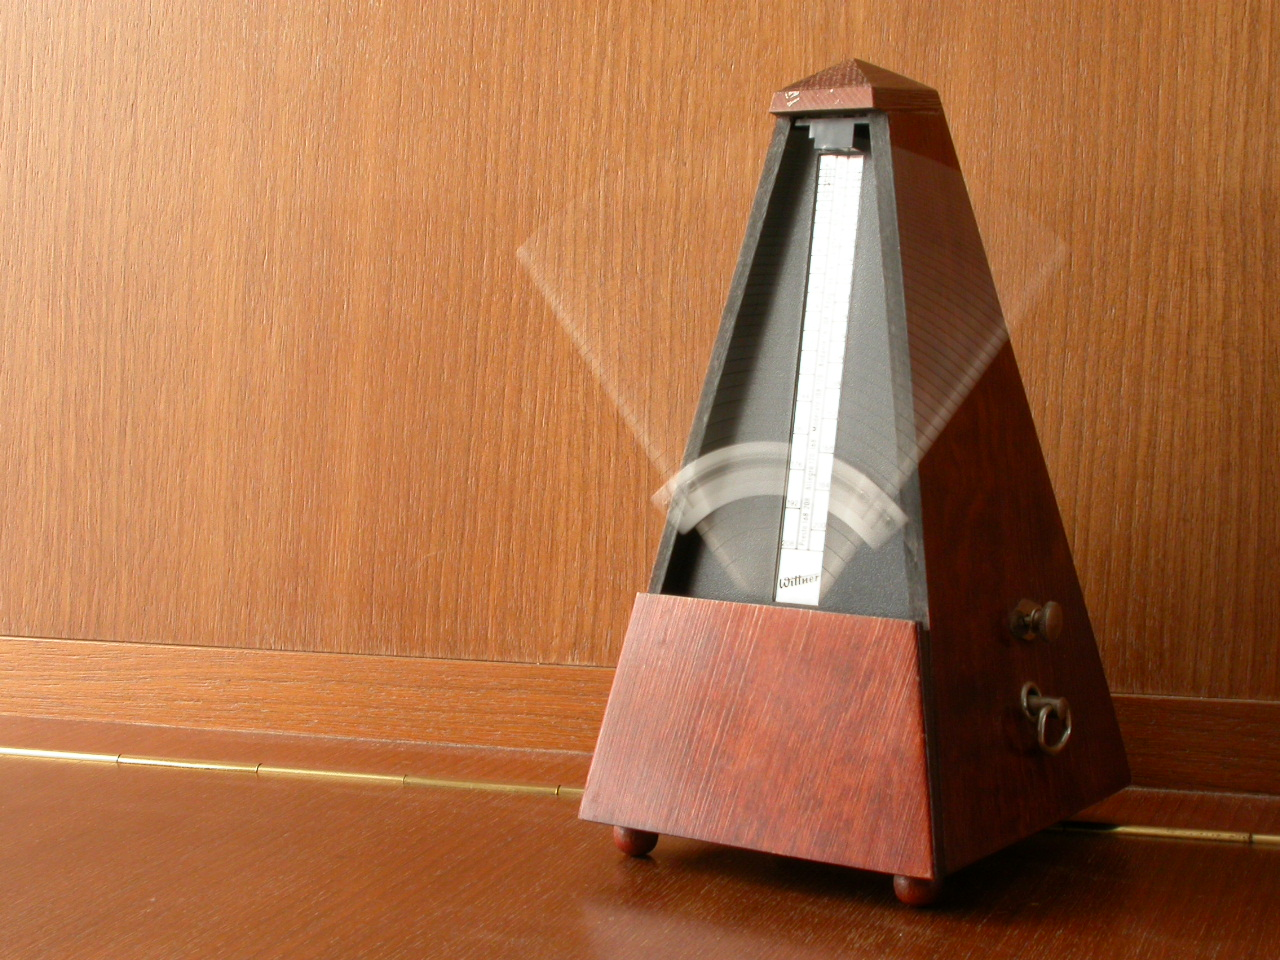 metronome guitar station